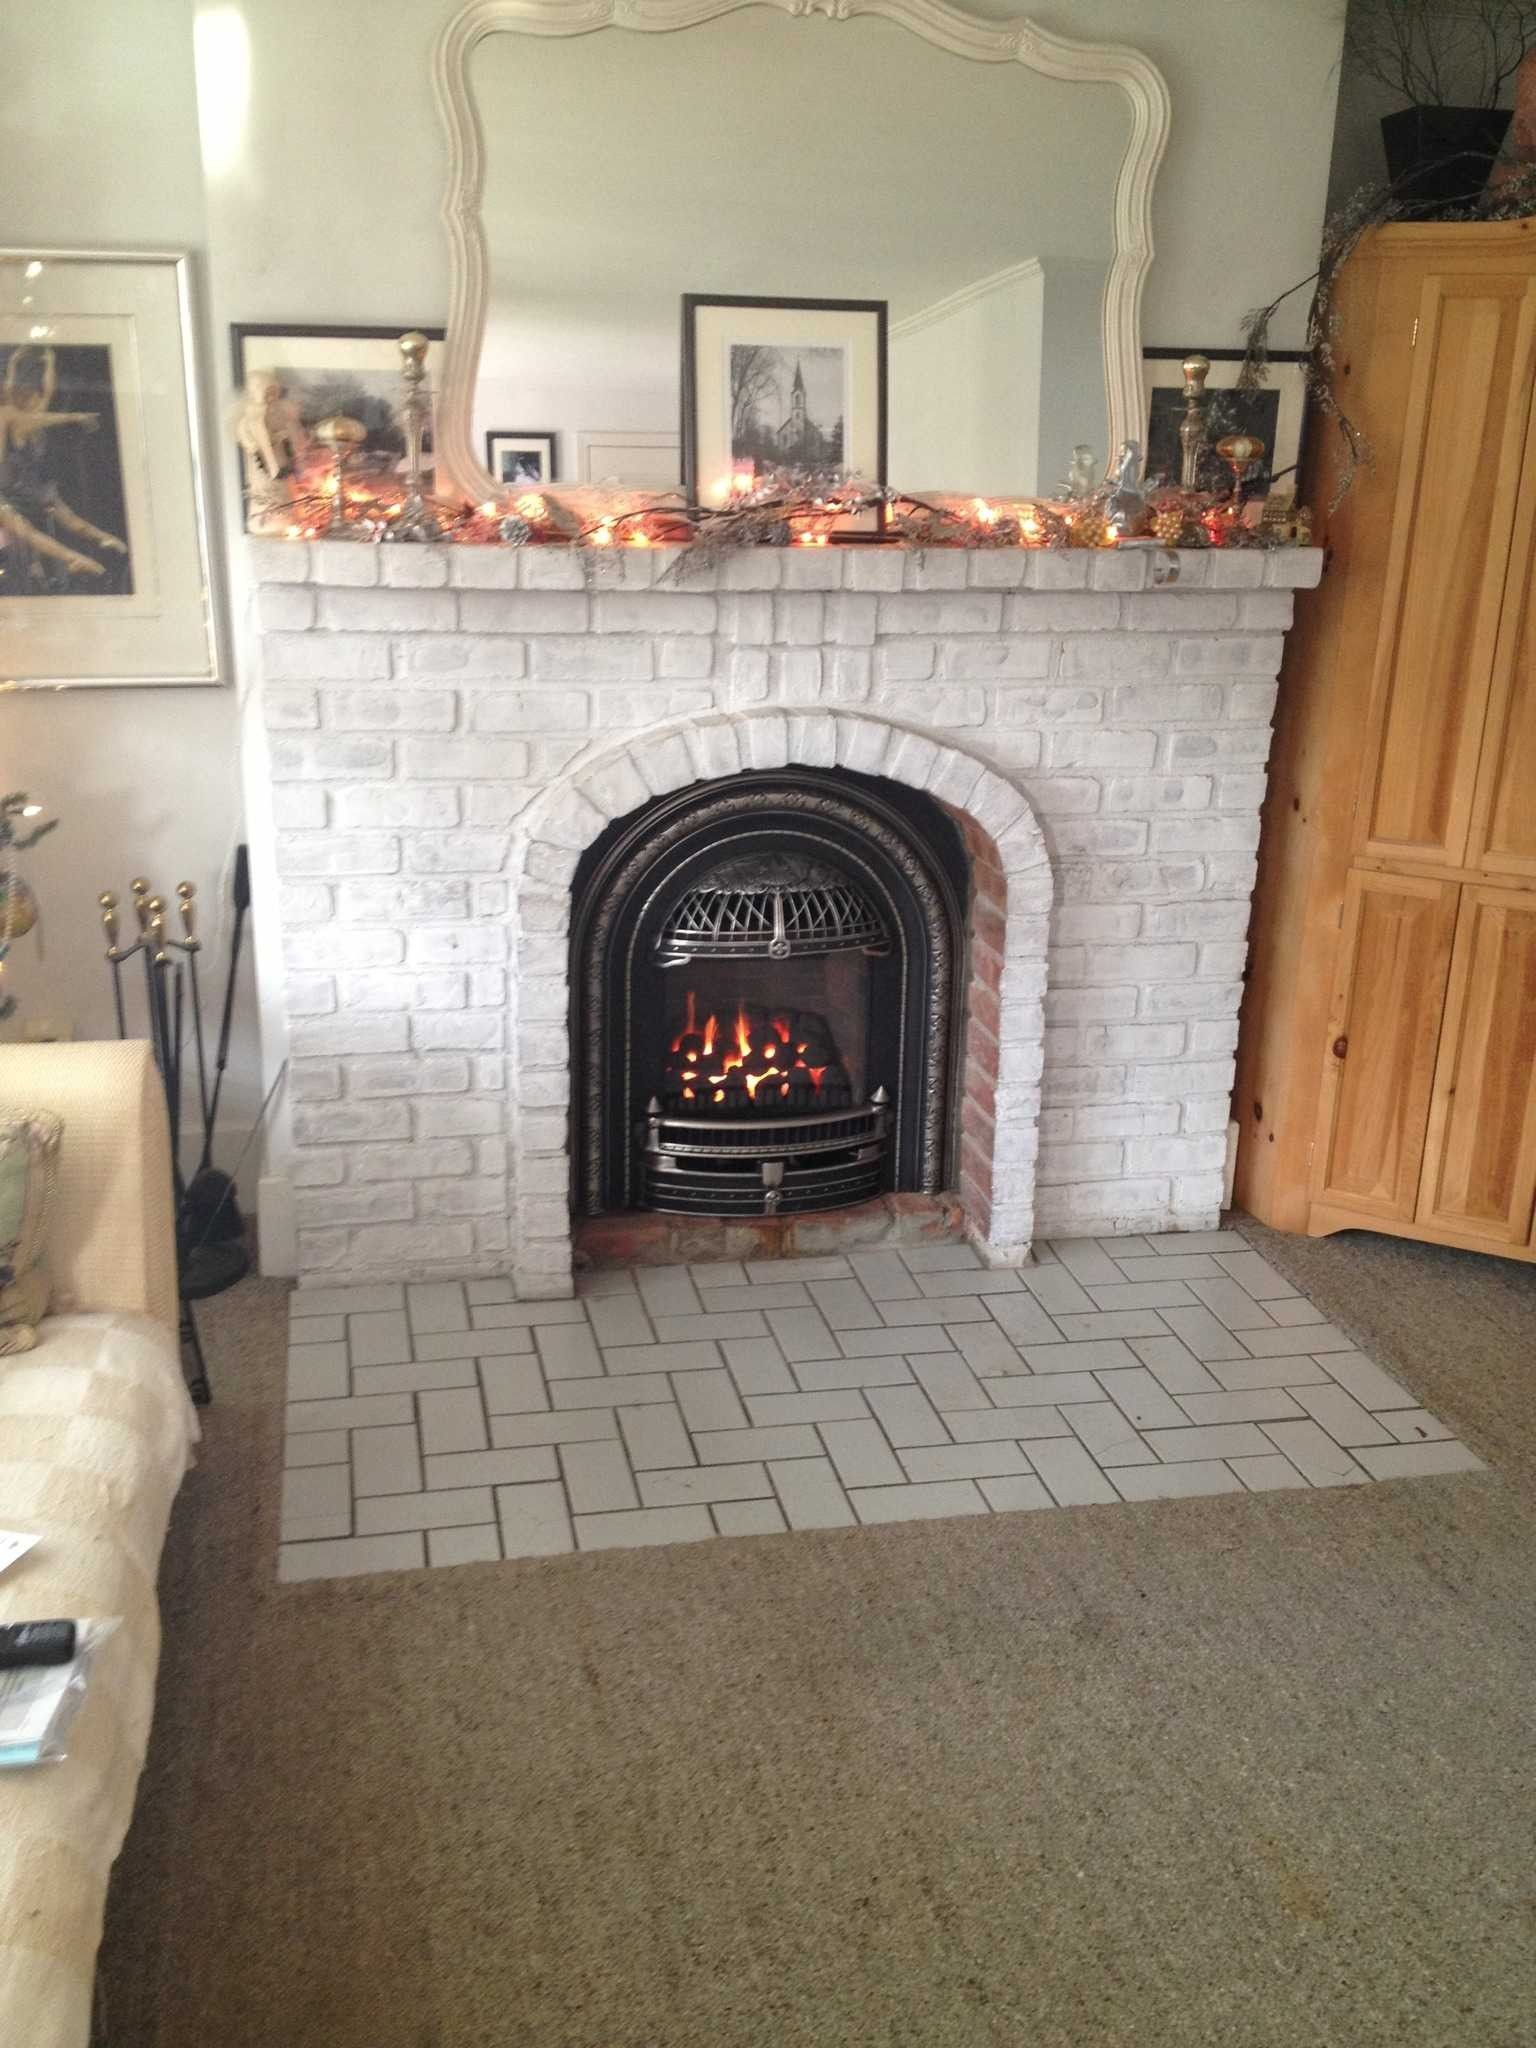 build best installed images post framing ownerbuilderbook fireplace corner of gas insert blog installation